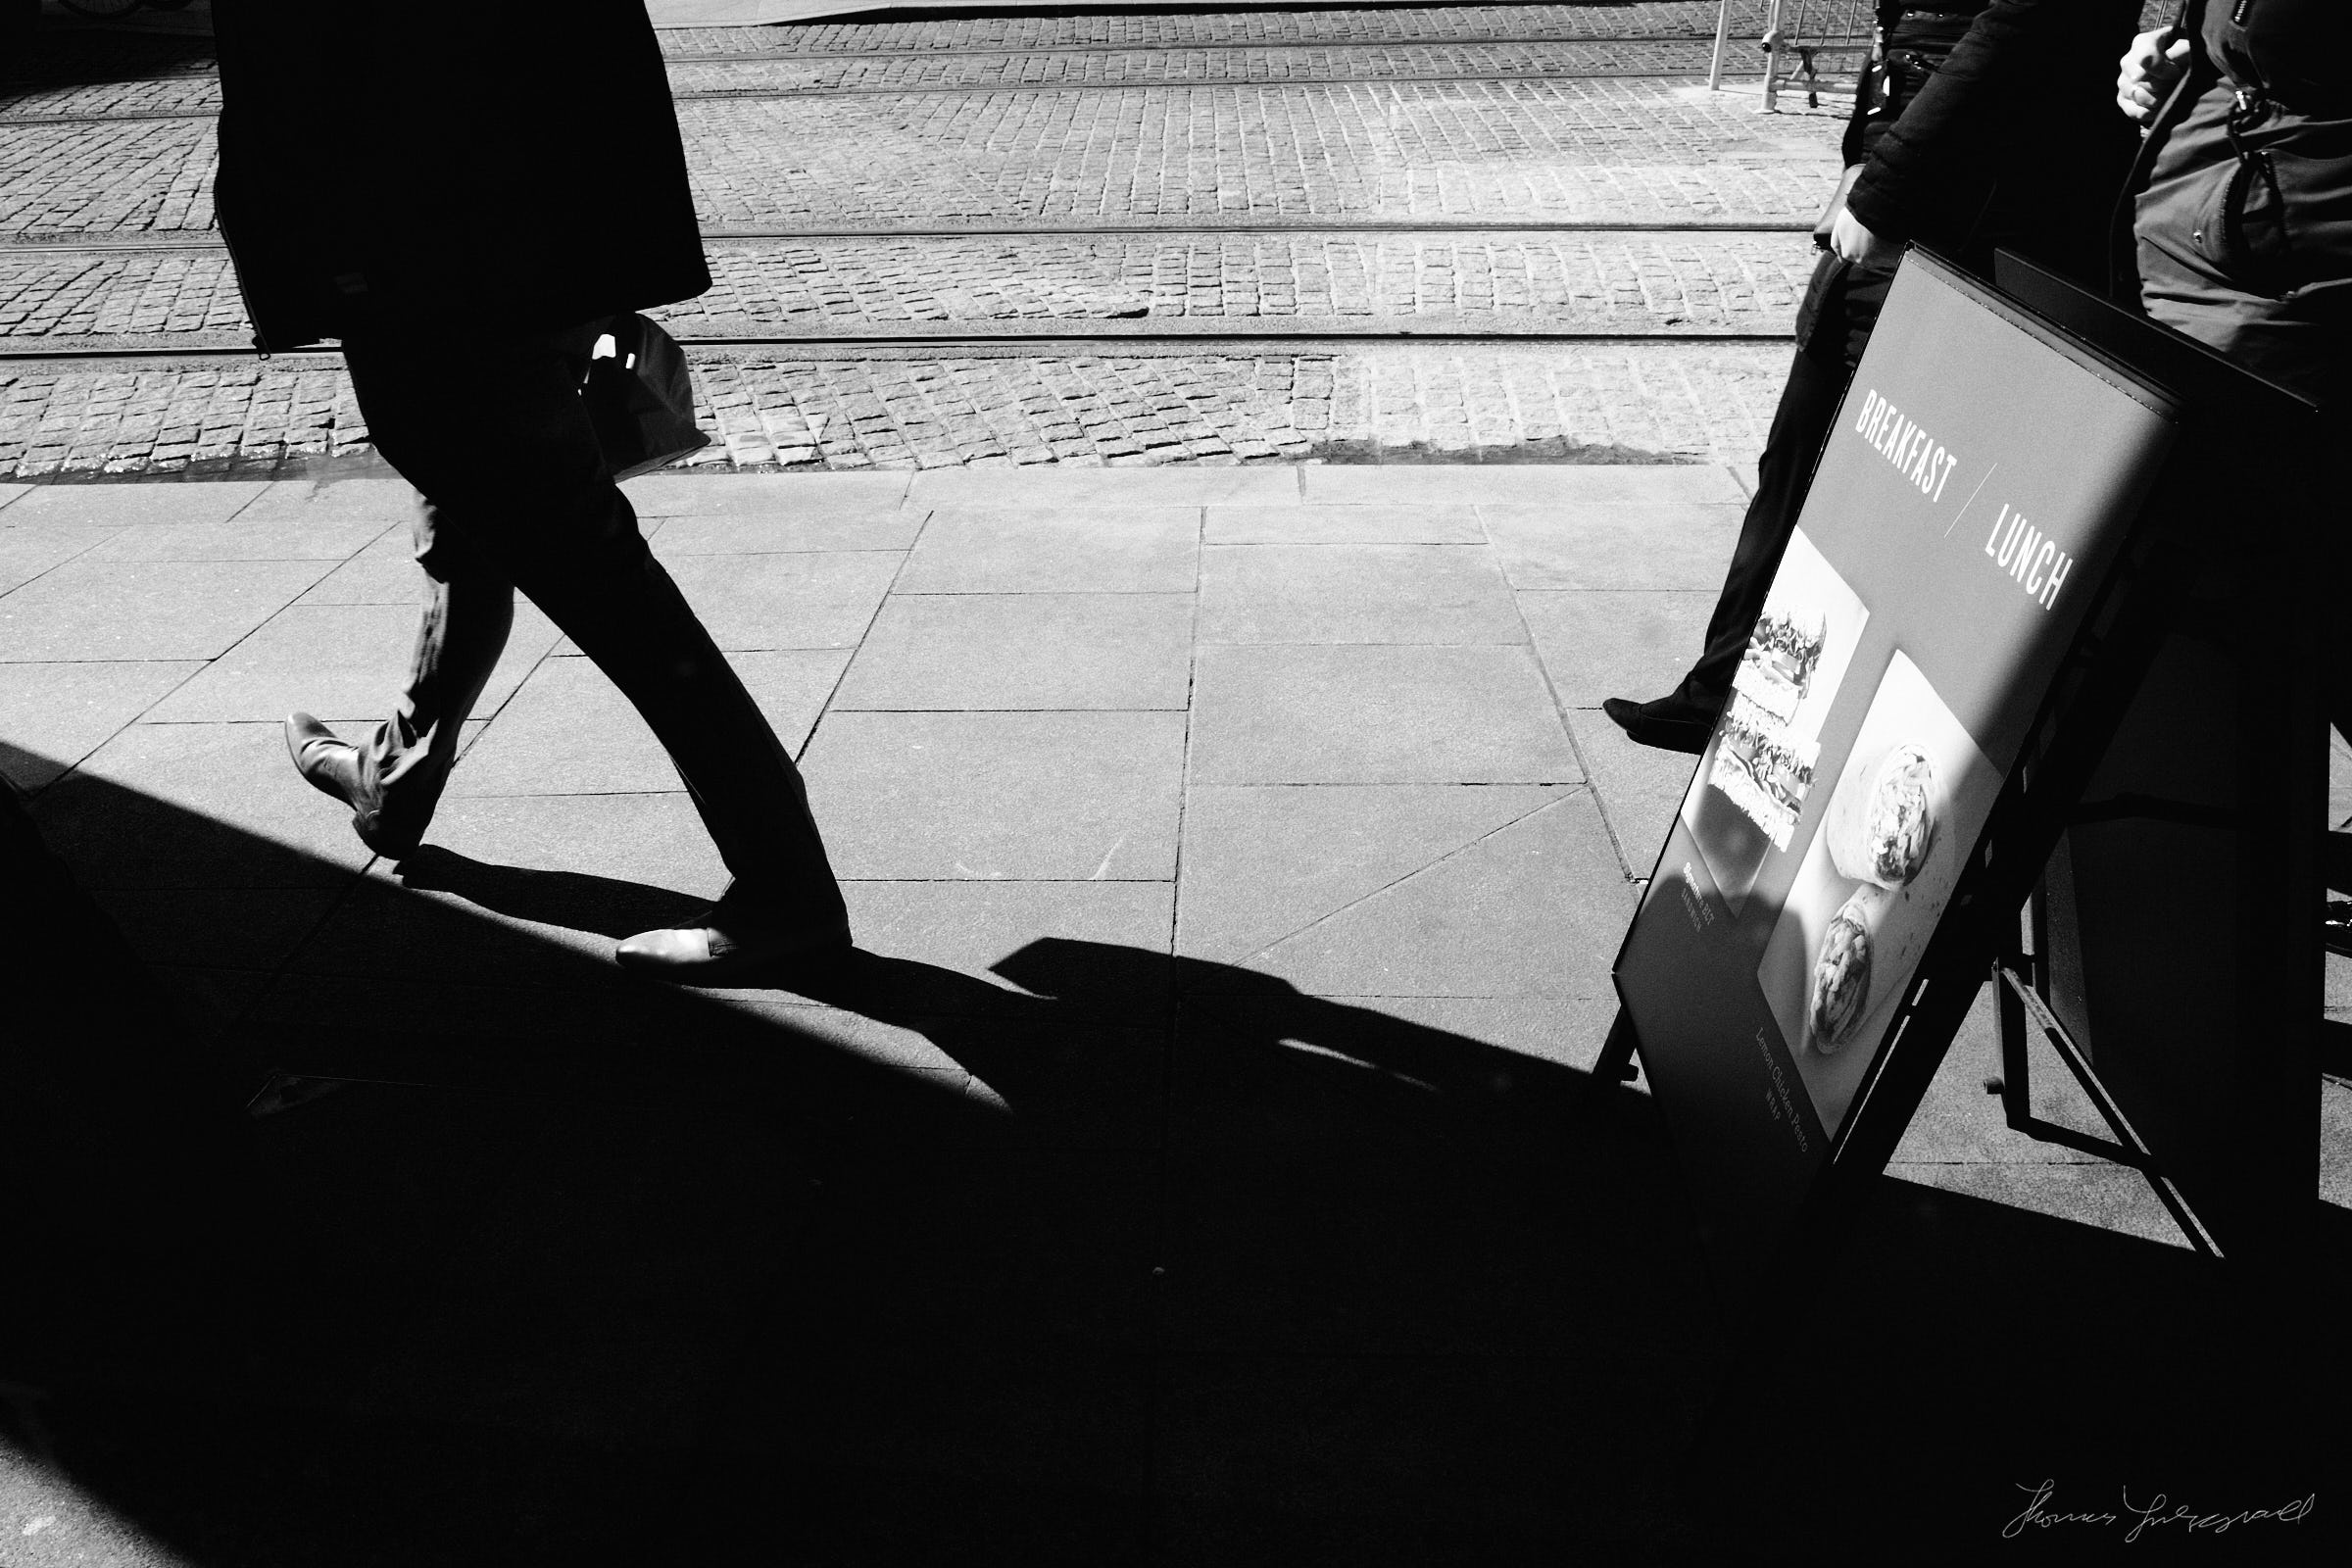 ShadowFeet_And_Street182.jpg